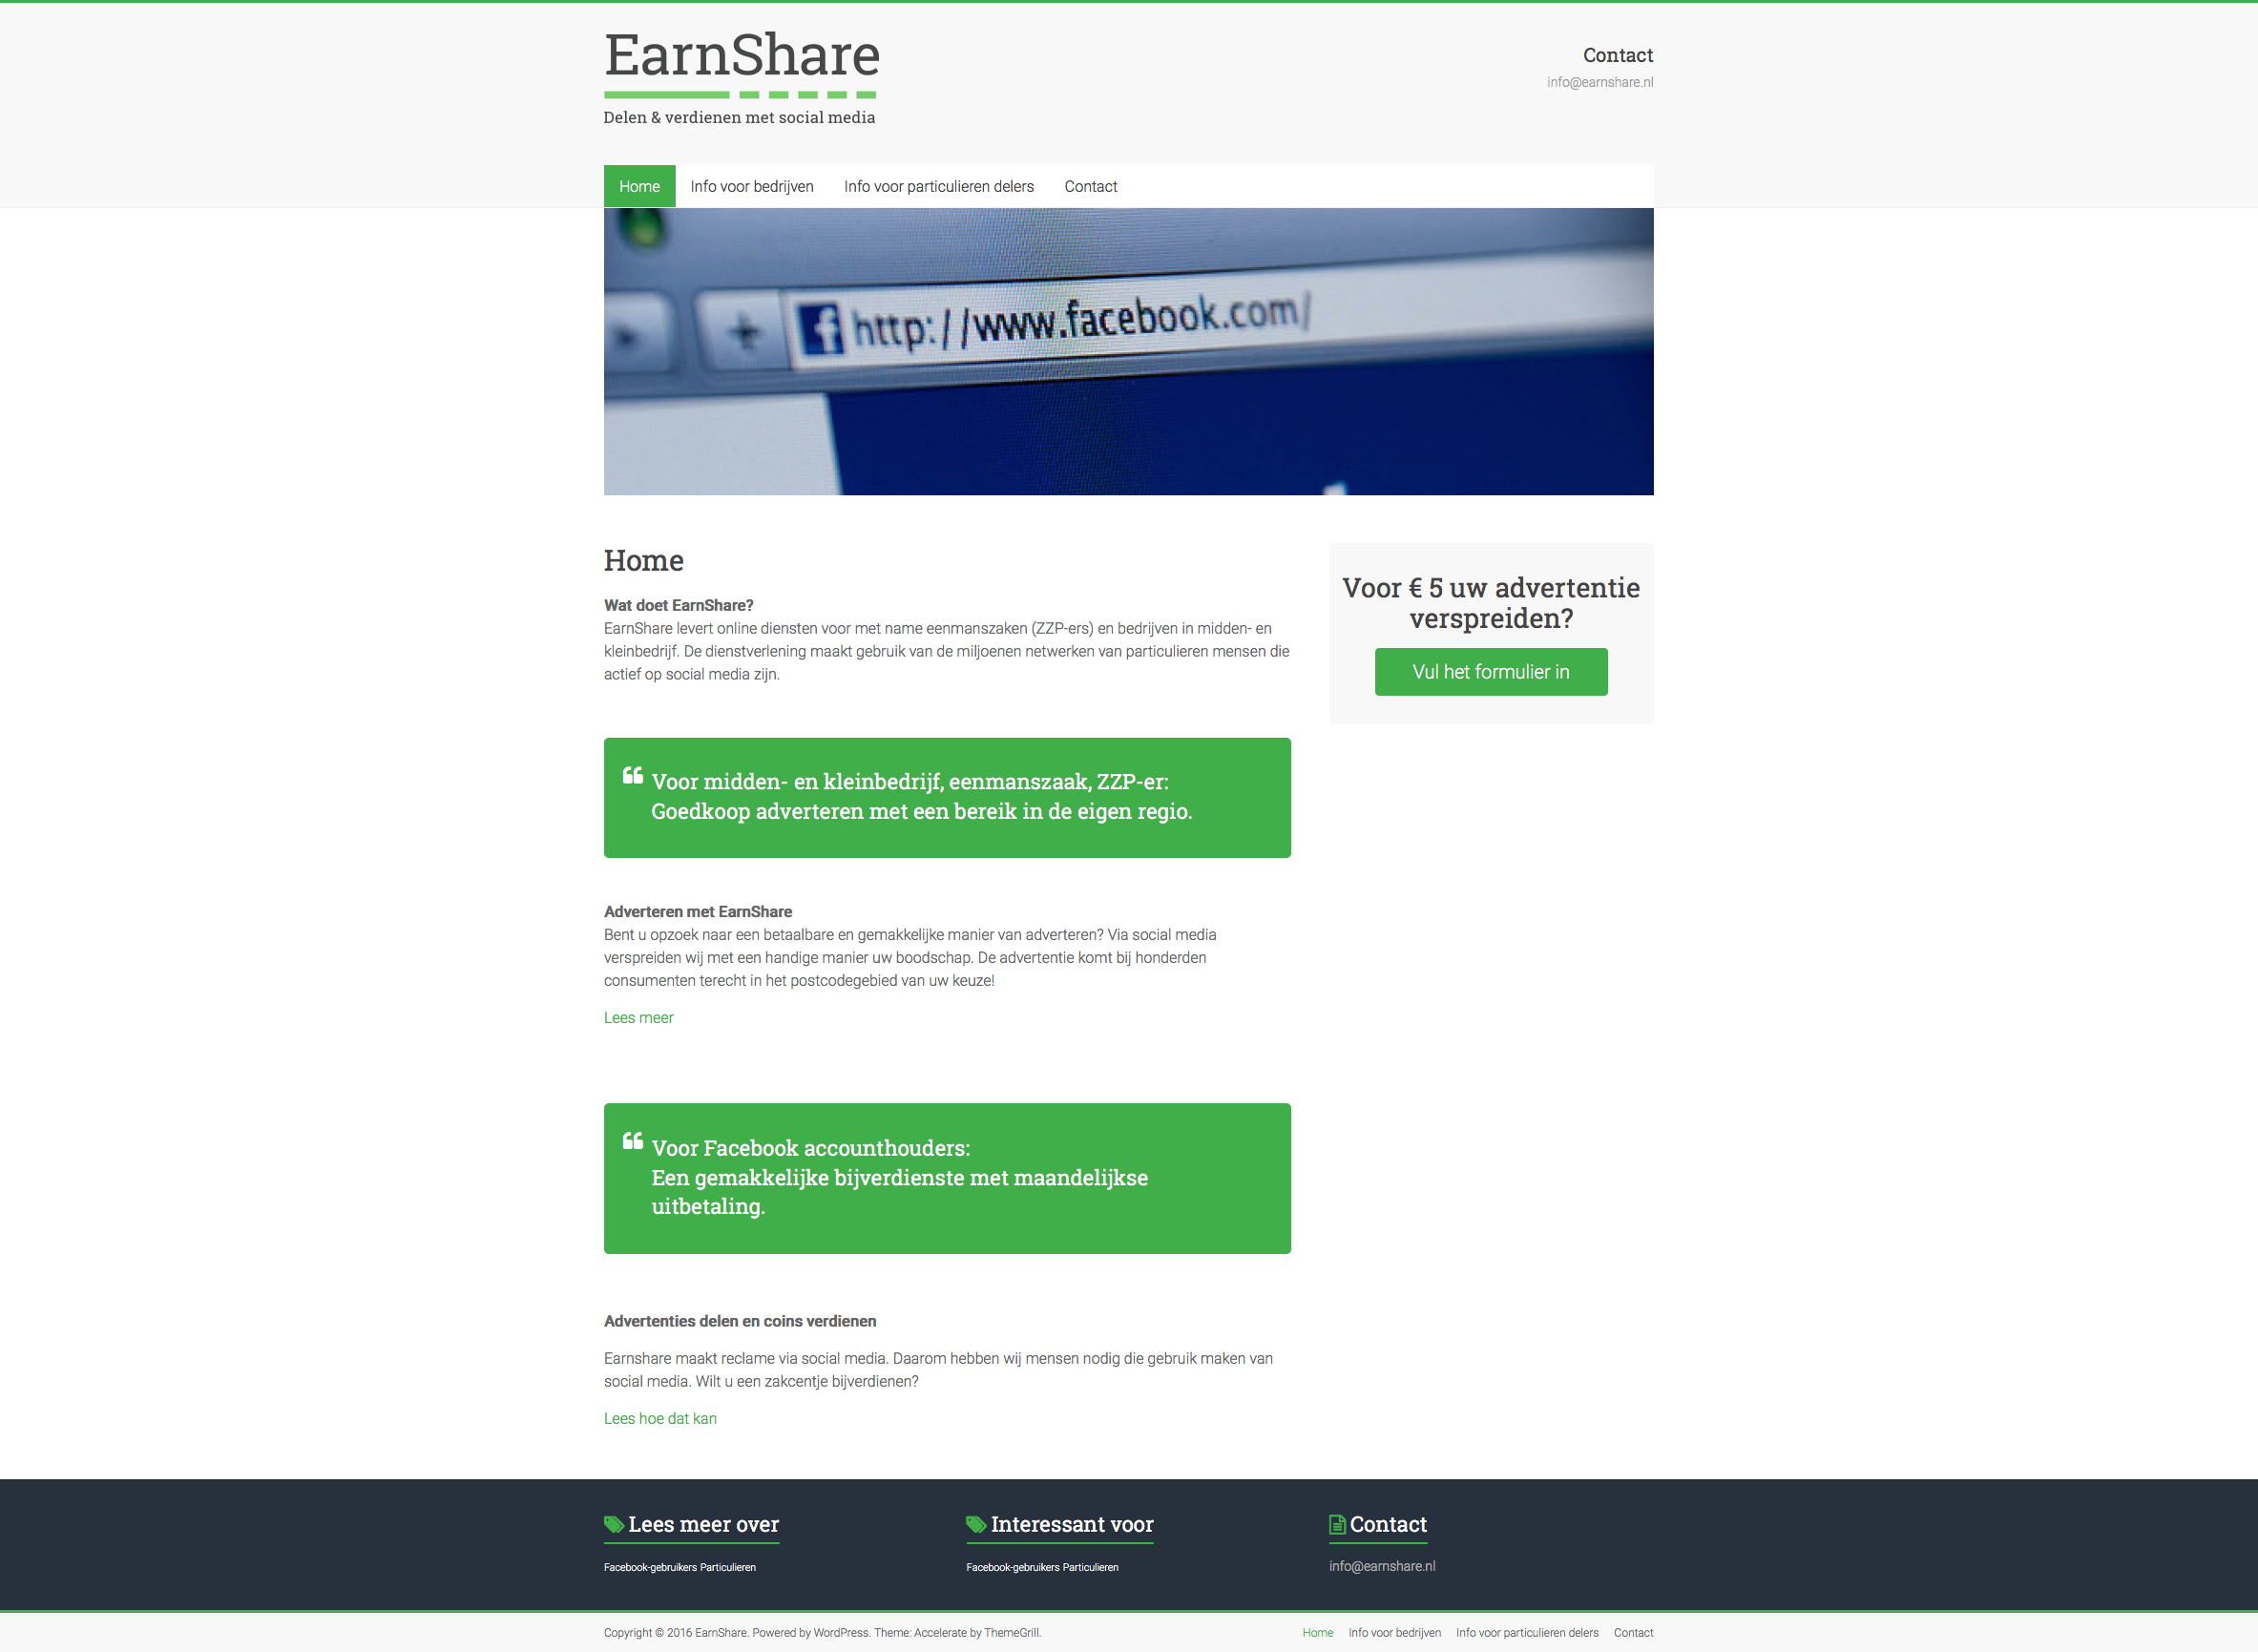 screenshot-earnshare nl 2016-02-10 21-10-05